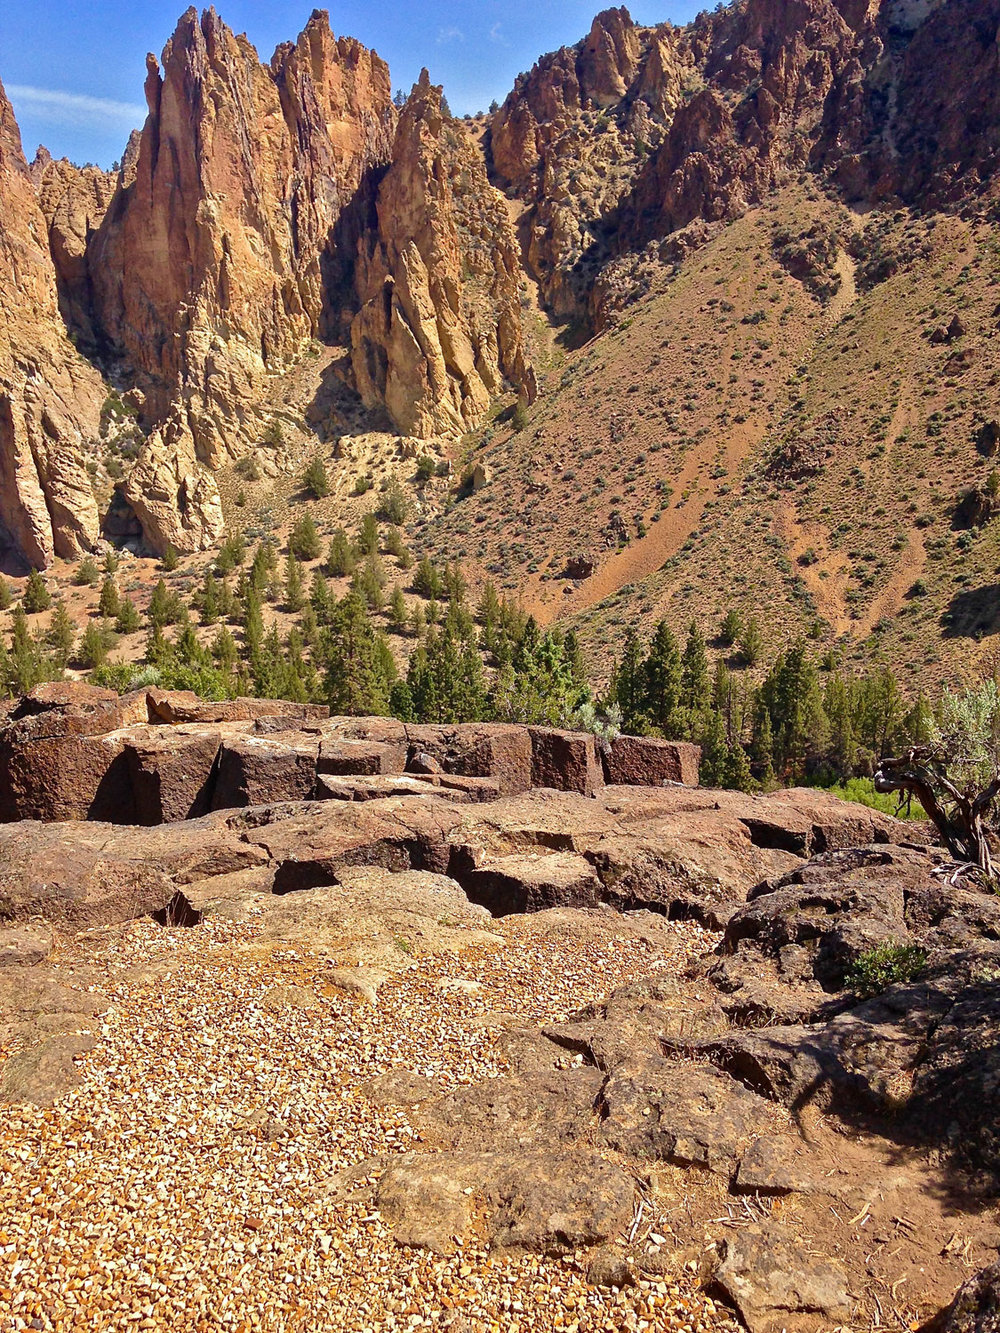 The basalt columns are loosely connected and steeply drop off into the river canyon below. KEEP PETS ON LEASH AND CHILDREN CLOSE.